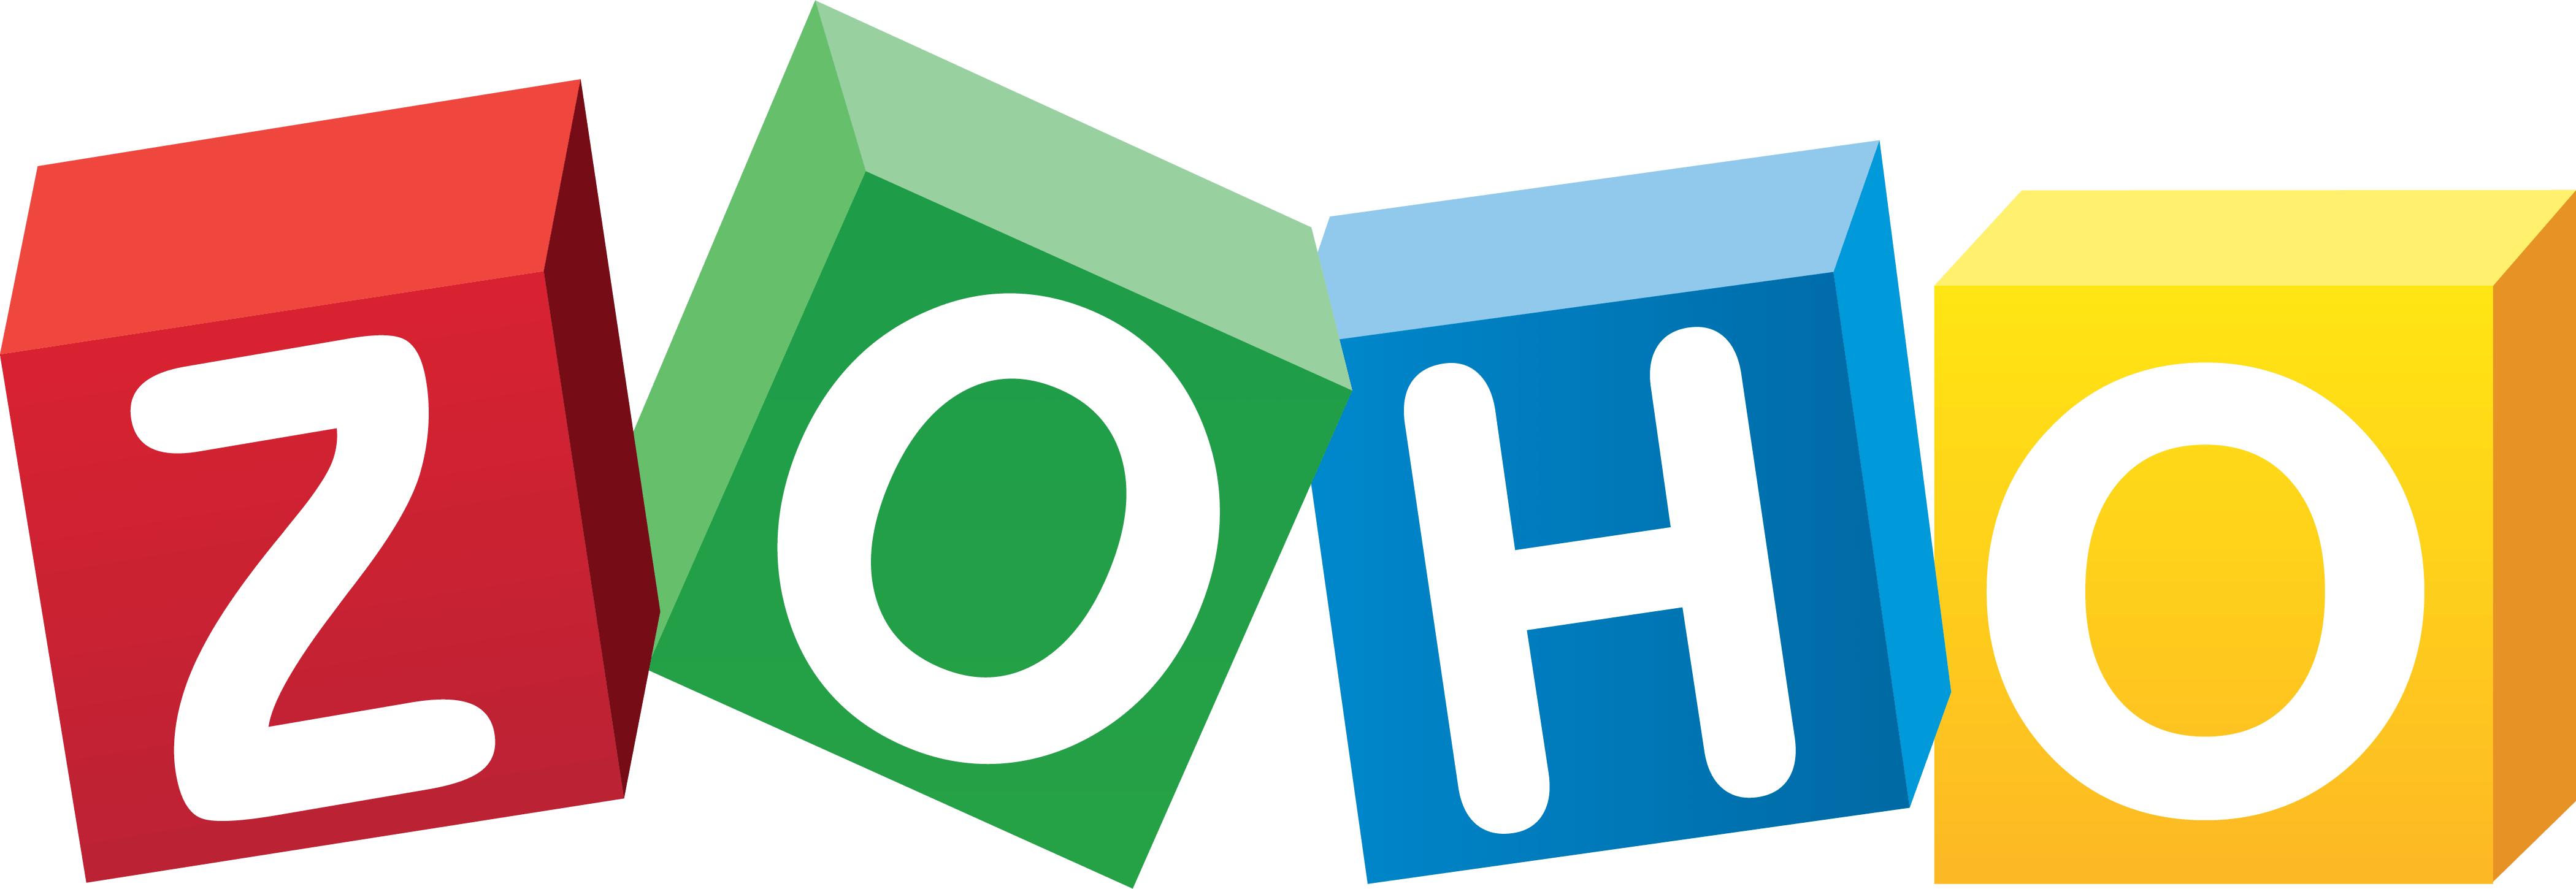 Zoho Logo - small business accounting software